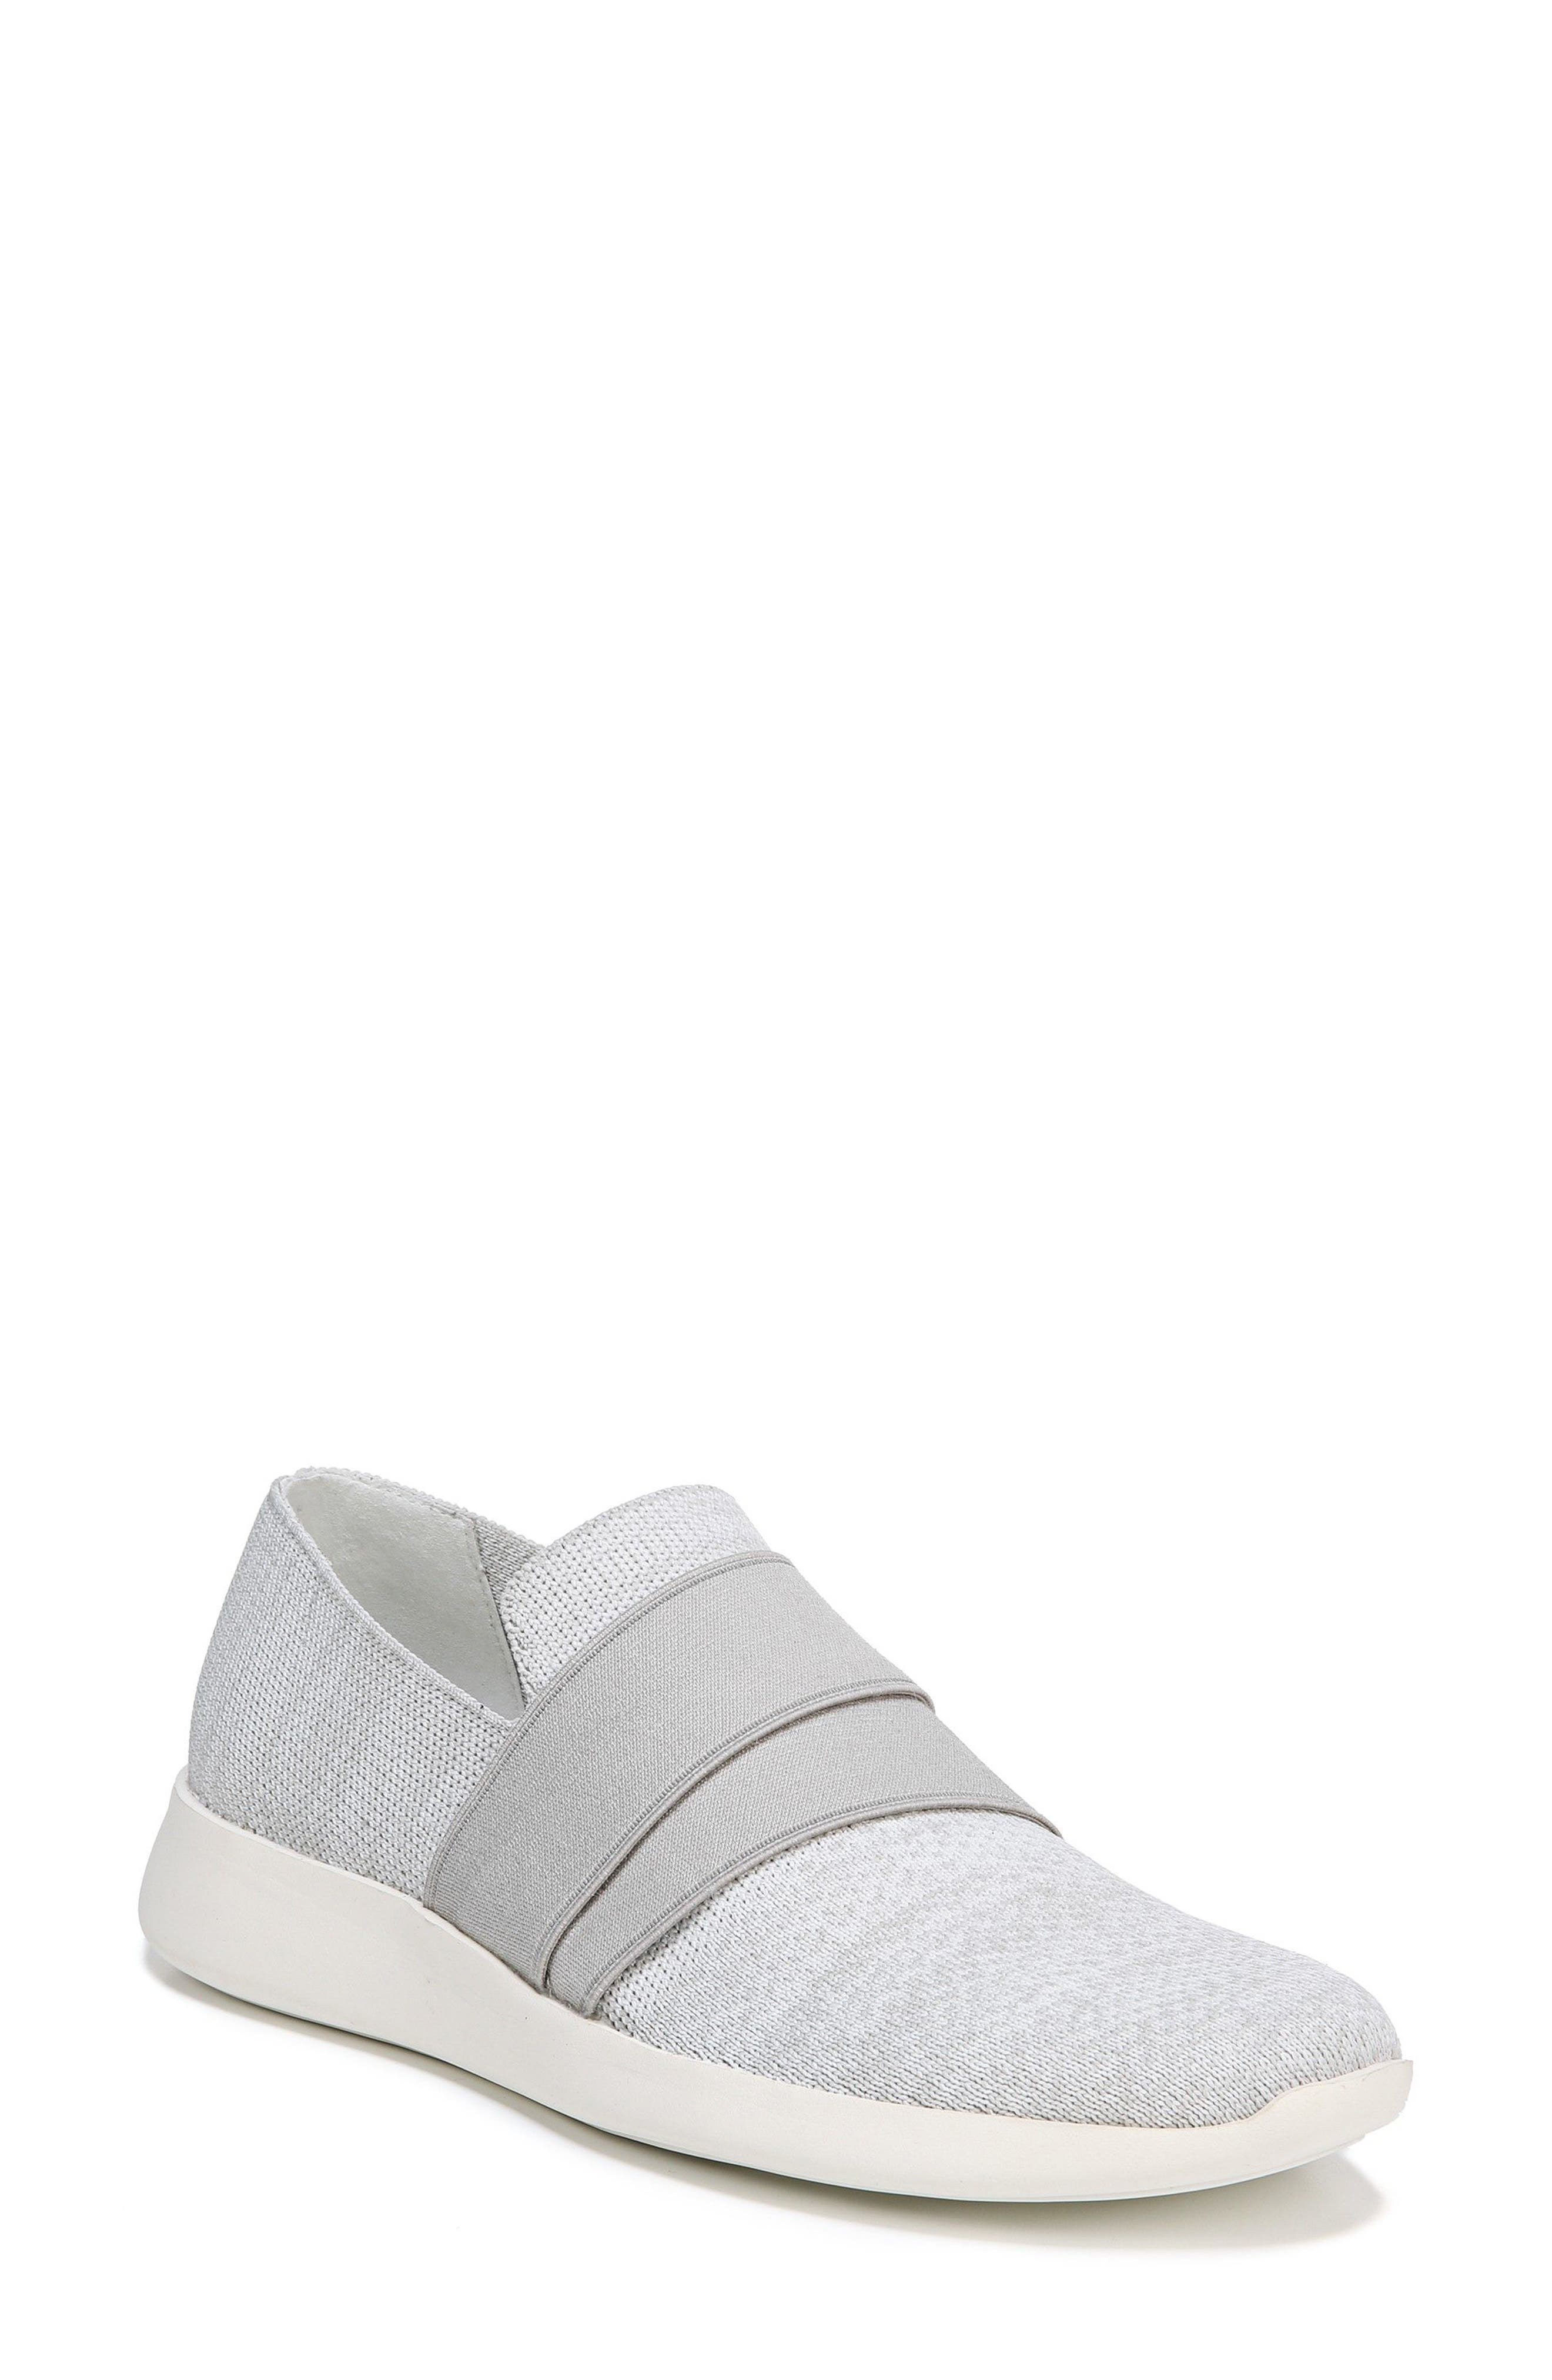 Aston Slip-On Sneaker,                         Main,                         color, White/ Grey Marled Knit